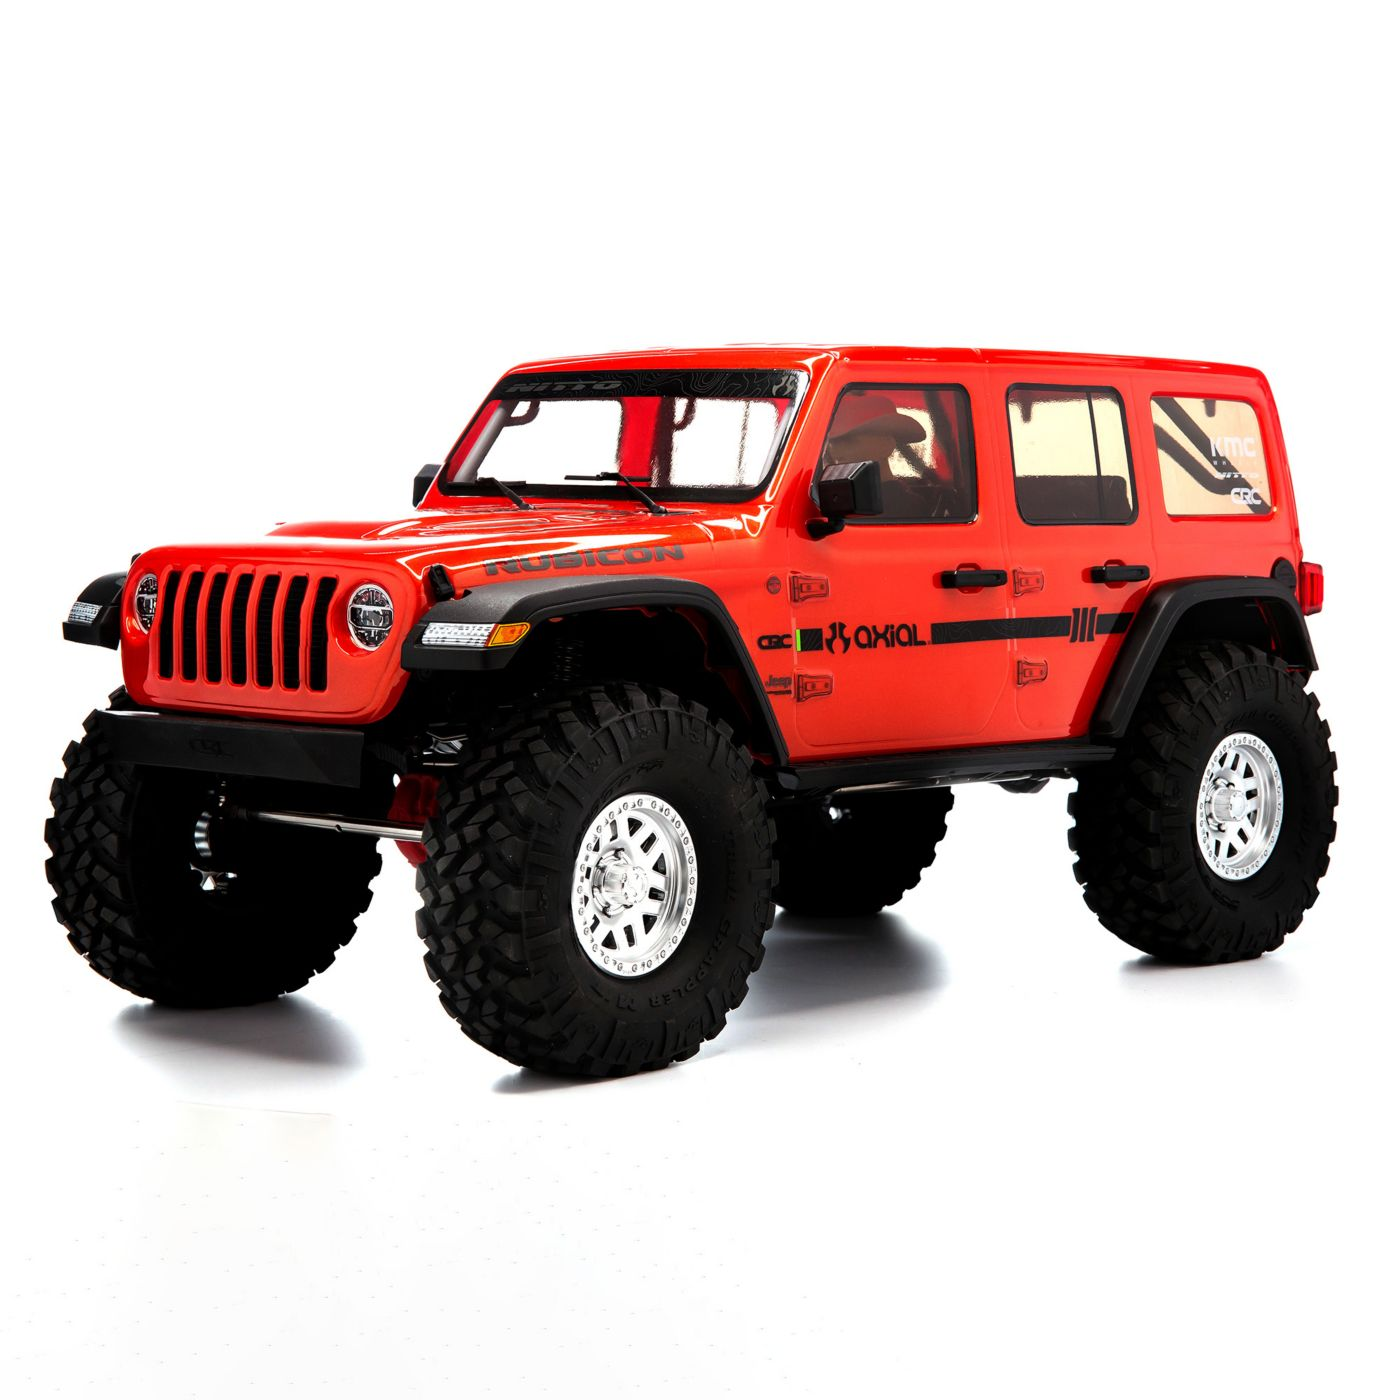 Axial Racing 1/10 SCX10 III Jeep JLU Wrangler with Portals RTR, Orange